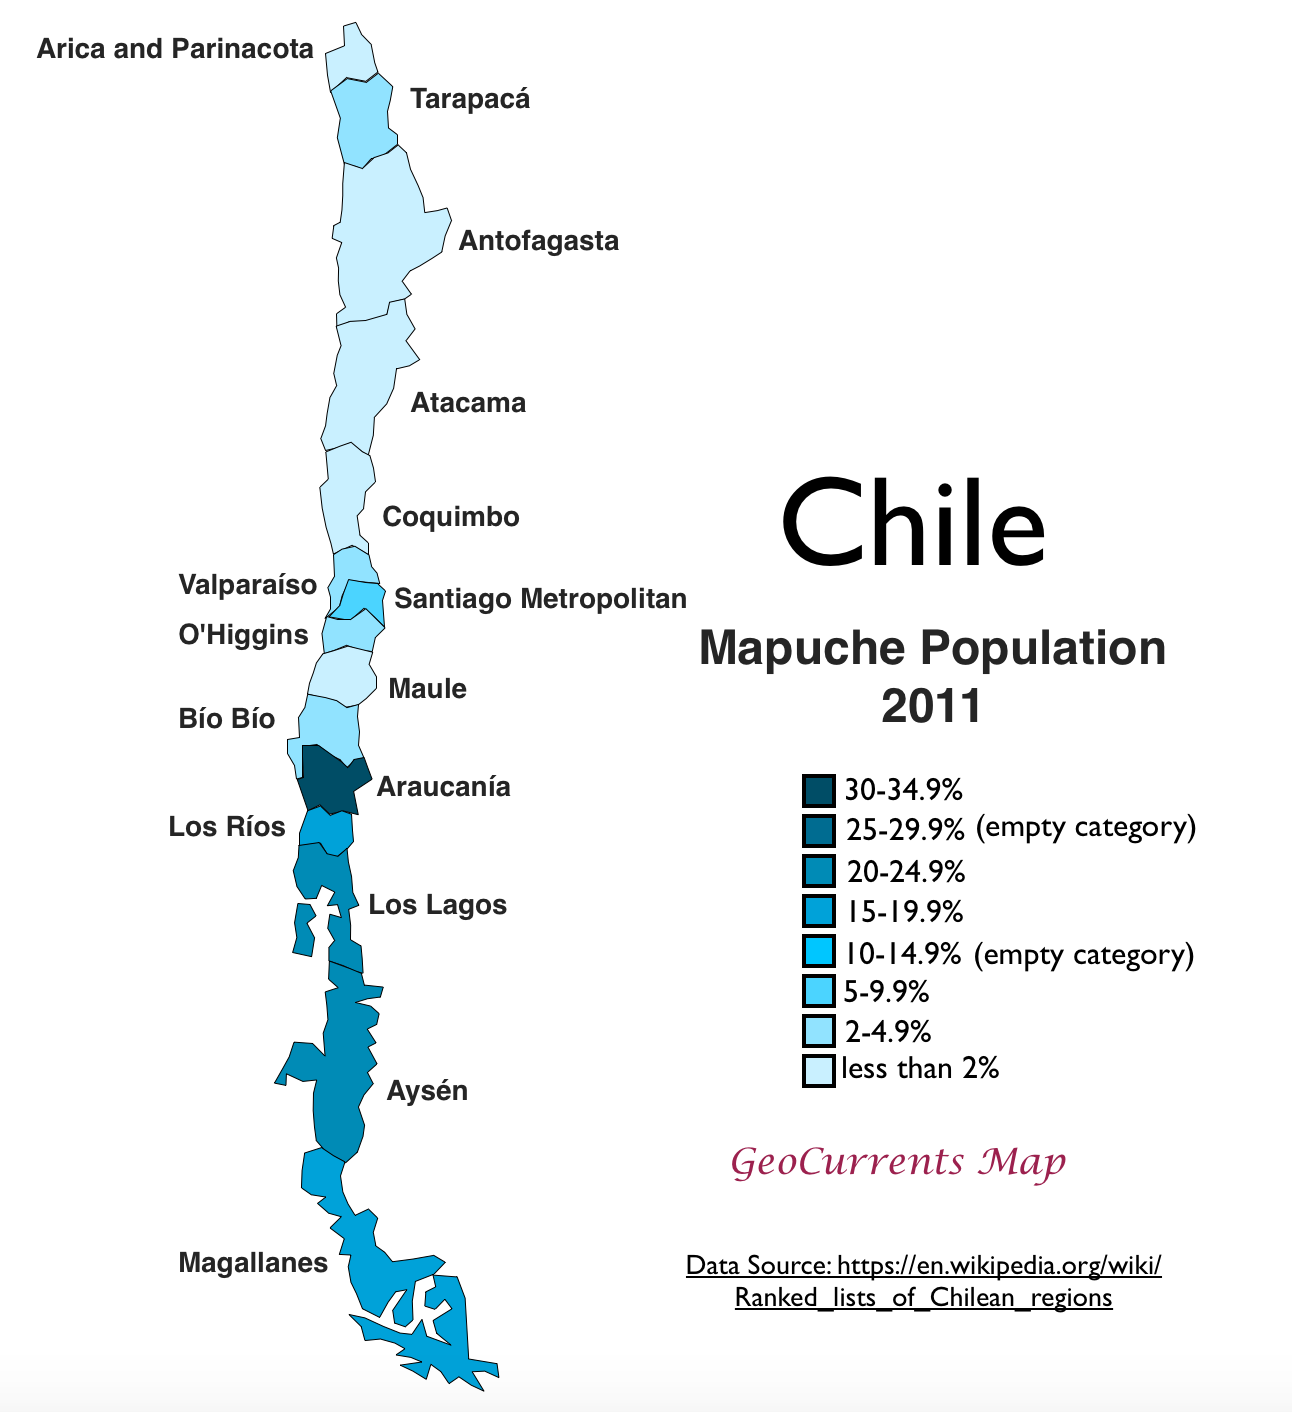 Mapping Chile's Indigenous Potion on central america on a map, saudi arabia on a map, santiago-chile map, spain on a map, coastal region on a map, southern india on a map, santa domingo on a map, bolivia on a map, colombia on a map, nicaragua on a map, tonga on a map, dr congo on a map, the sudan on a map, honduras on a map, brazil on a map, venezuela on a map, argentina on a map, taiwan on a map, new zealand on a map, cyprus on a map,